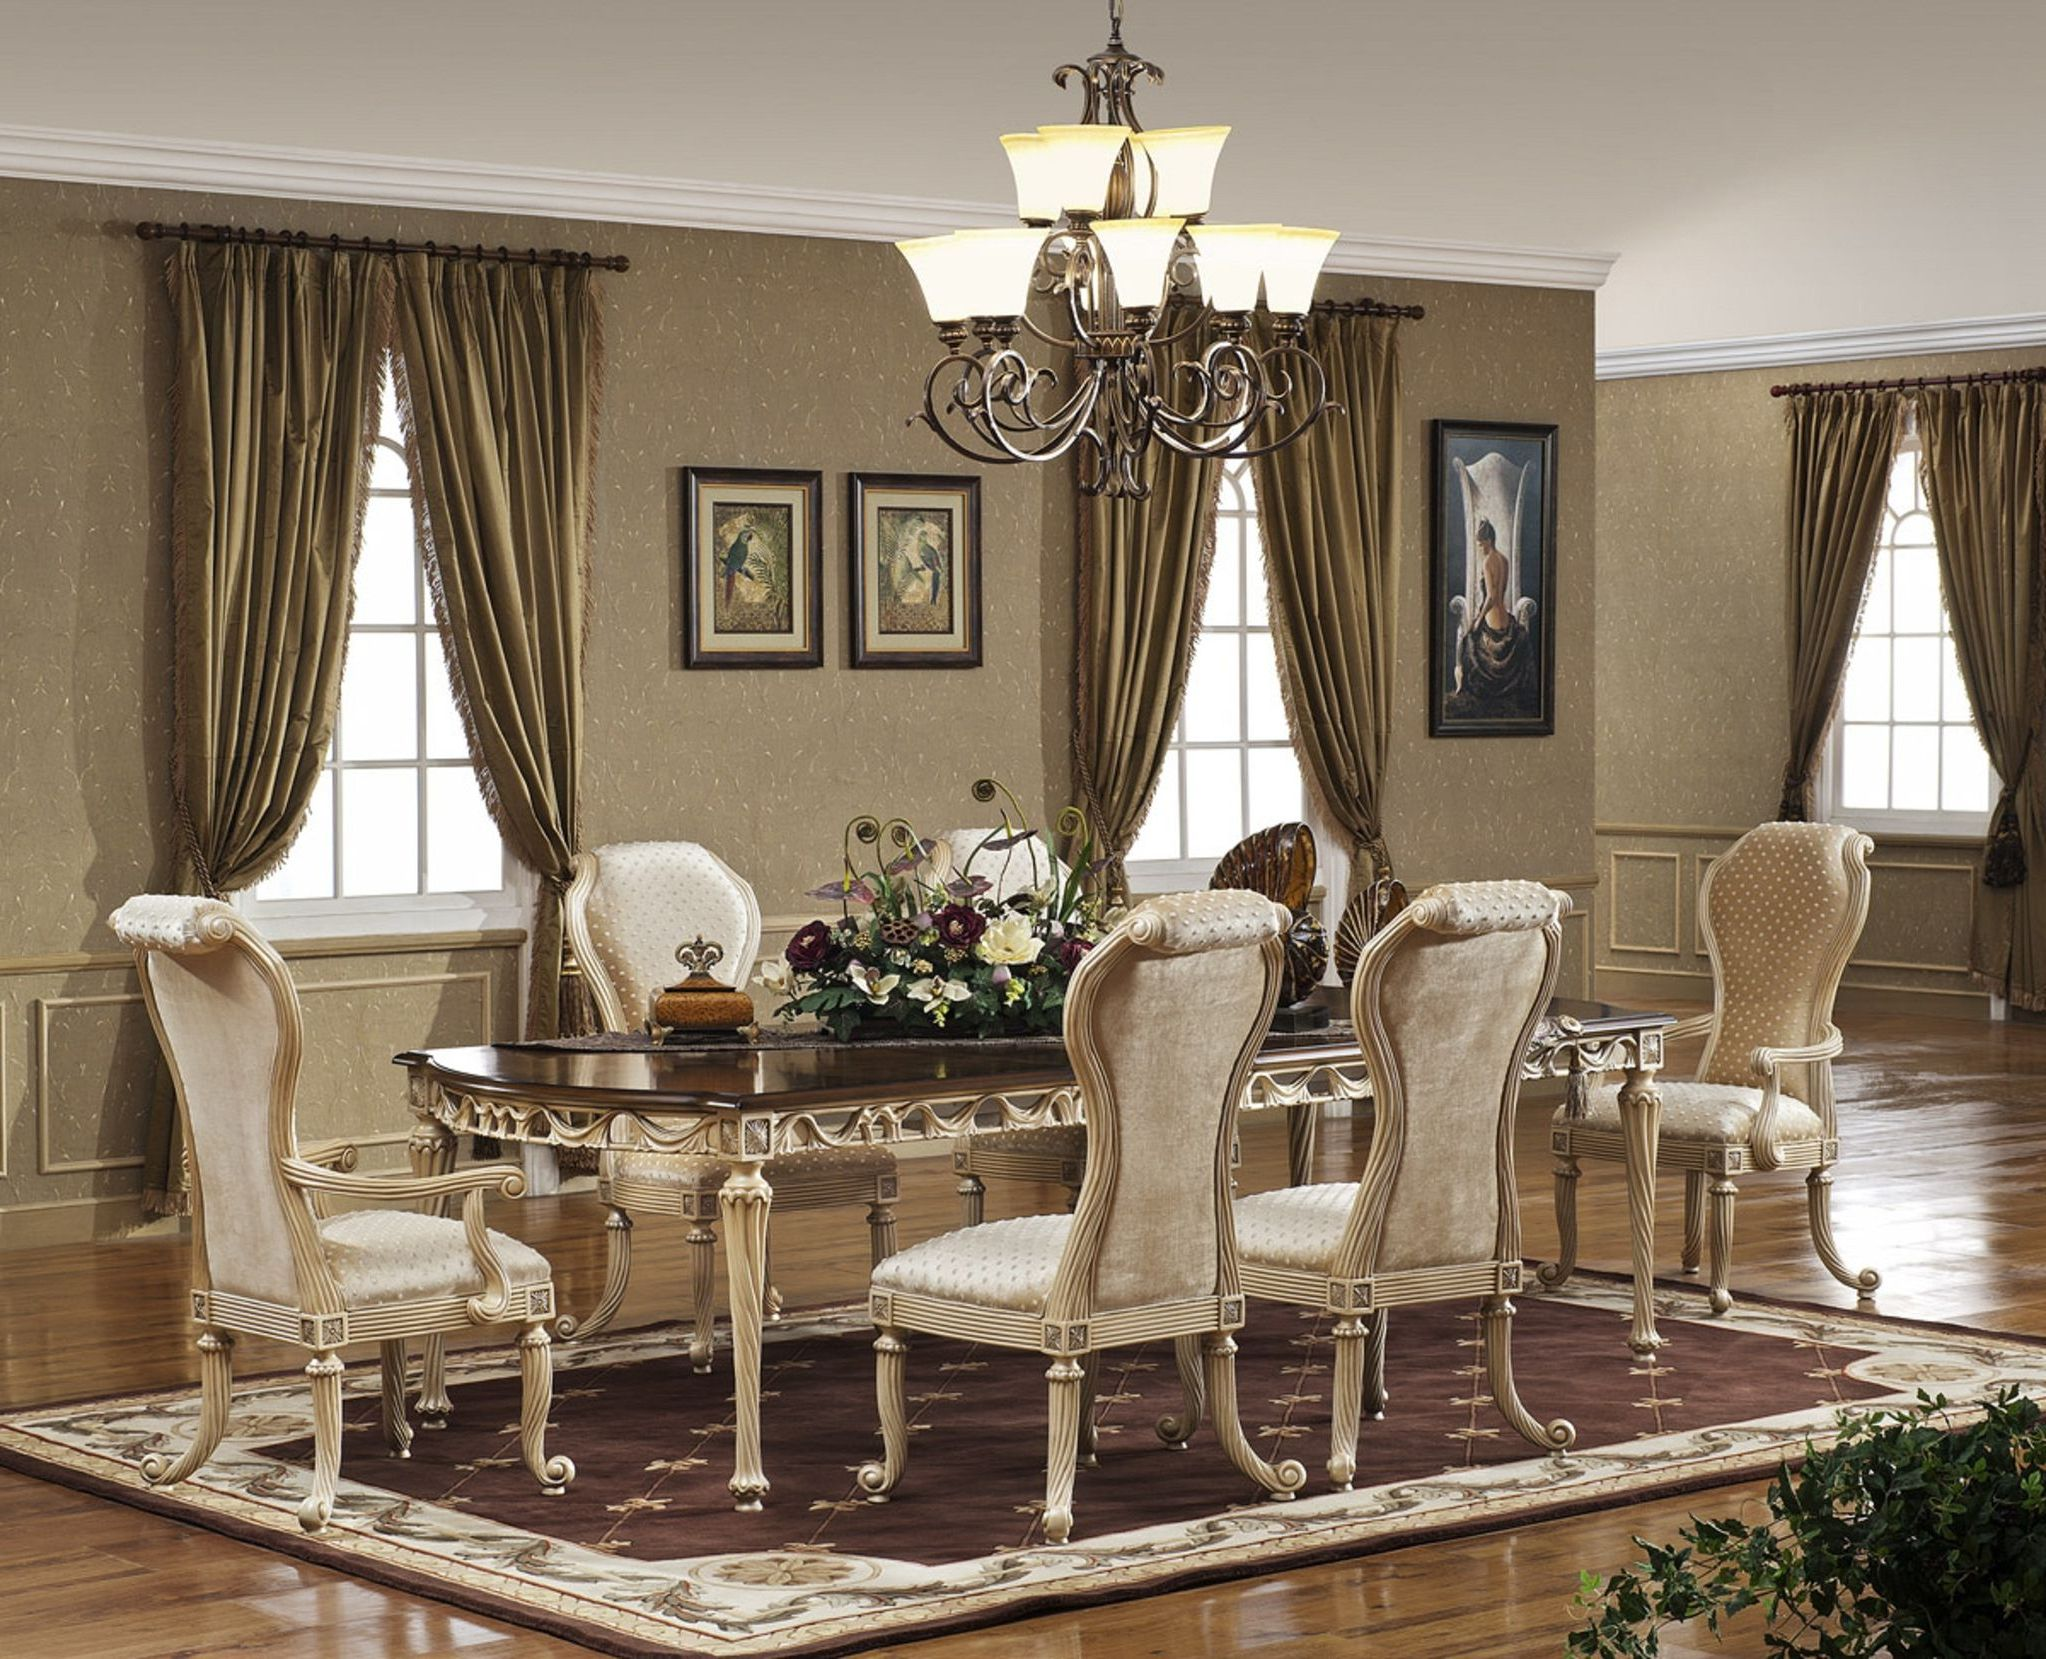 Dining room table and chairs ideas with images for Dining room table top ideas